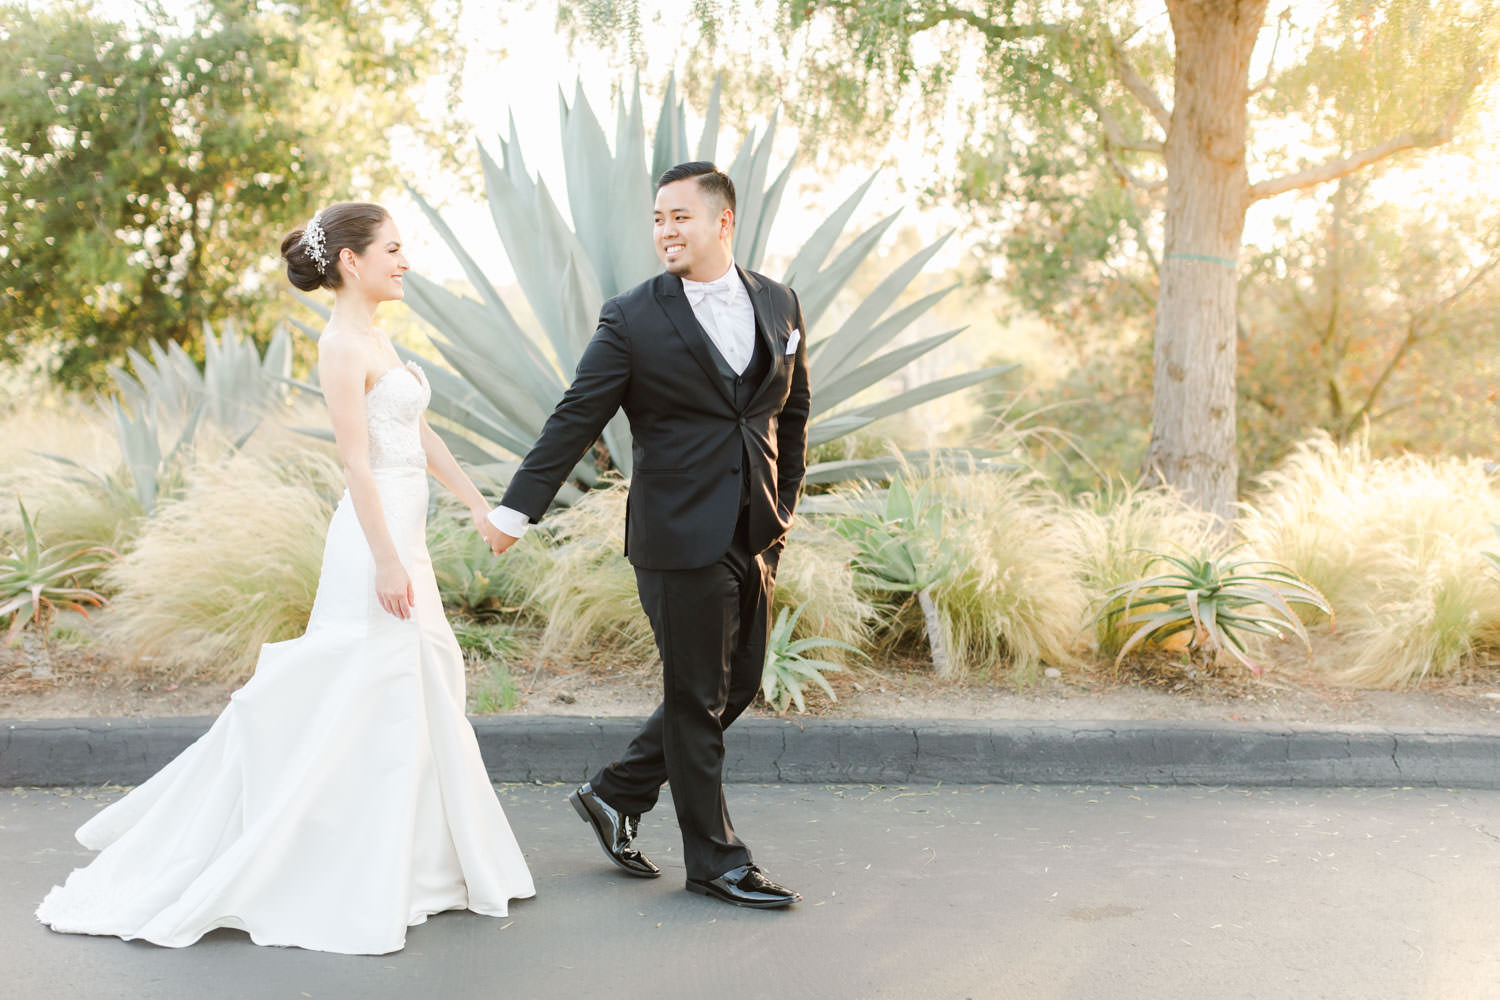 Bride and groom walking, Santaluz Club wedding reception, Cavin Elizabeth Photography